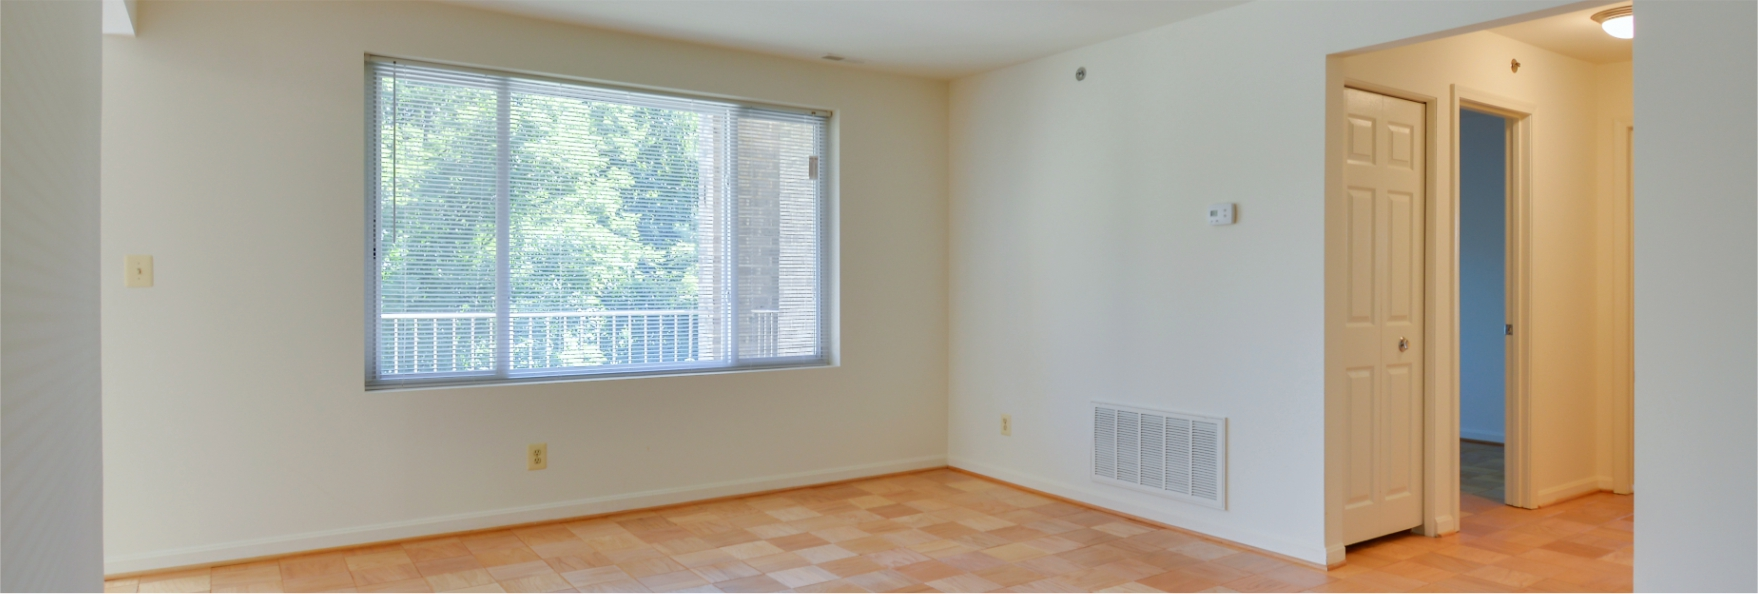 North-Ridge-Slide5